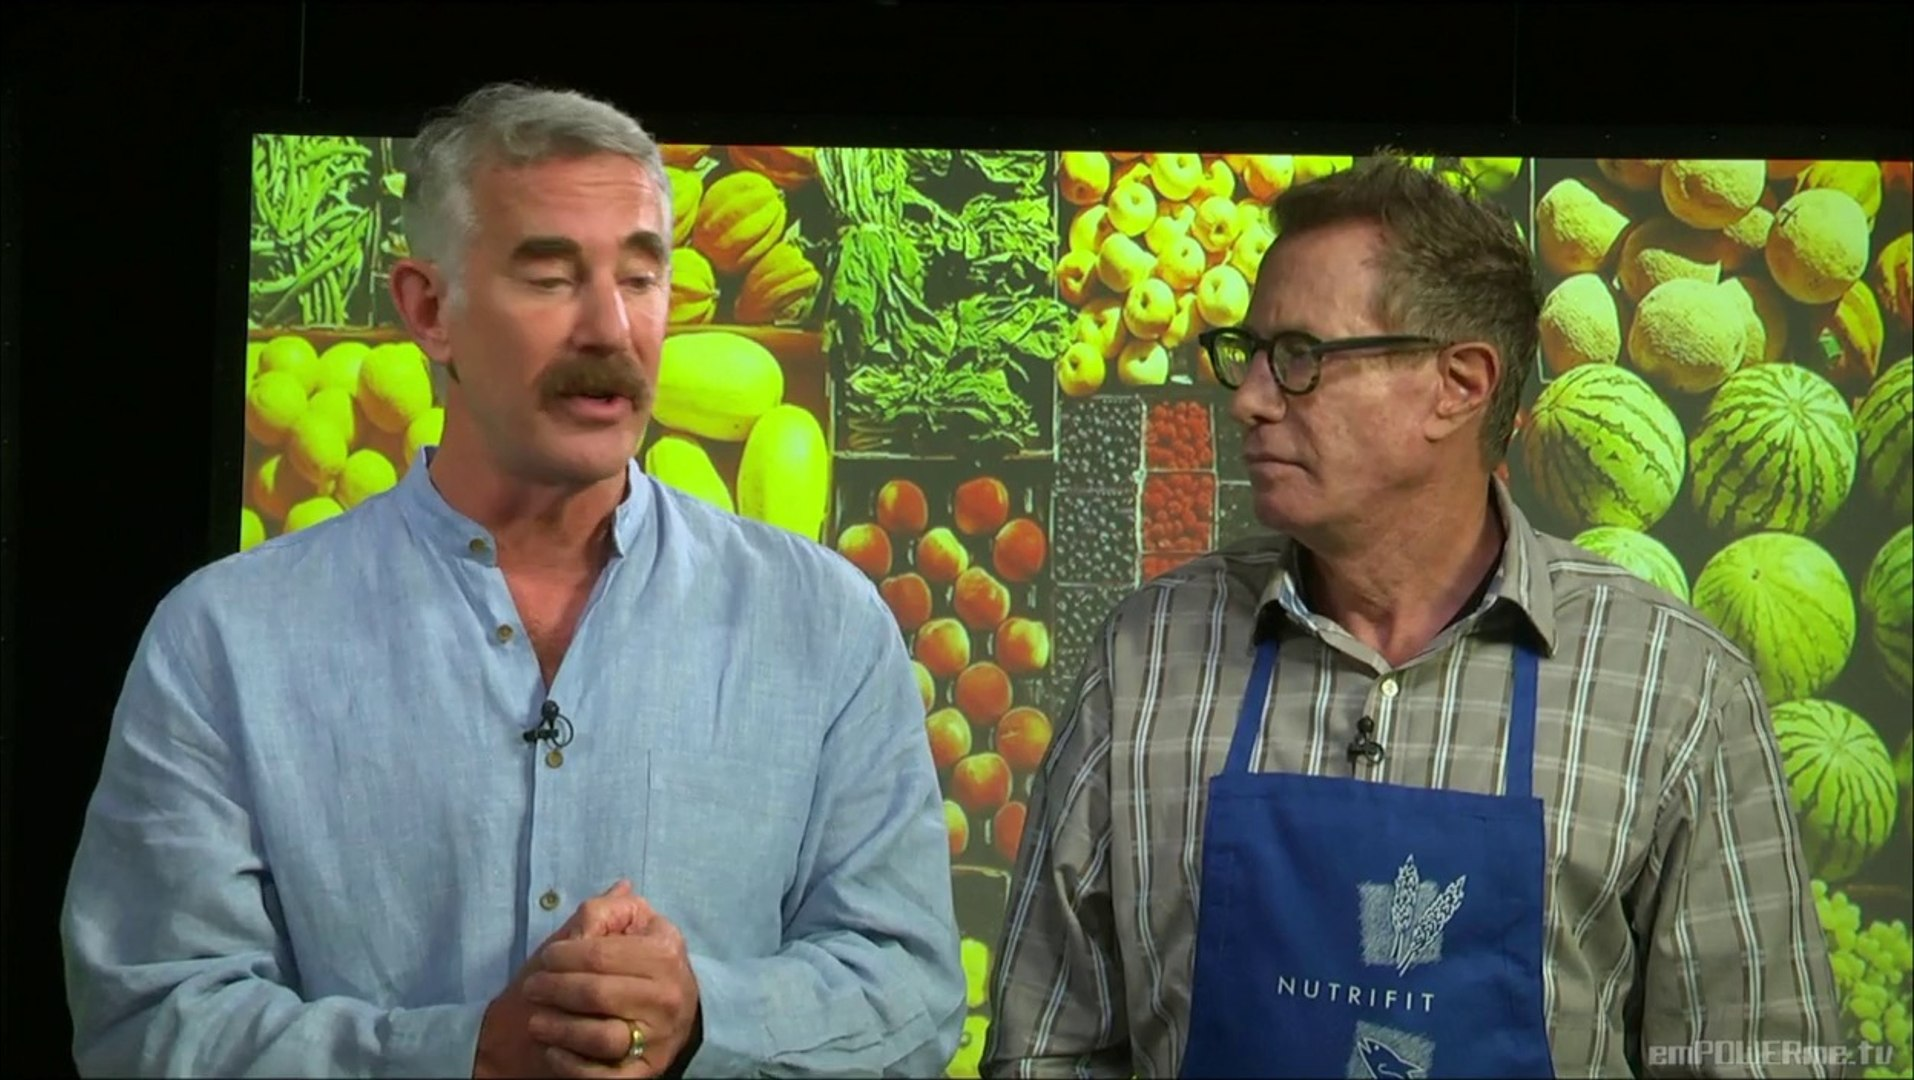 The Dining Duo – Michael Epstein and Scott Schwimer – talk food, cars and art on Food Exposed.